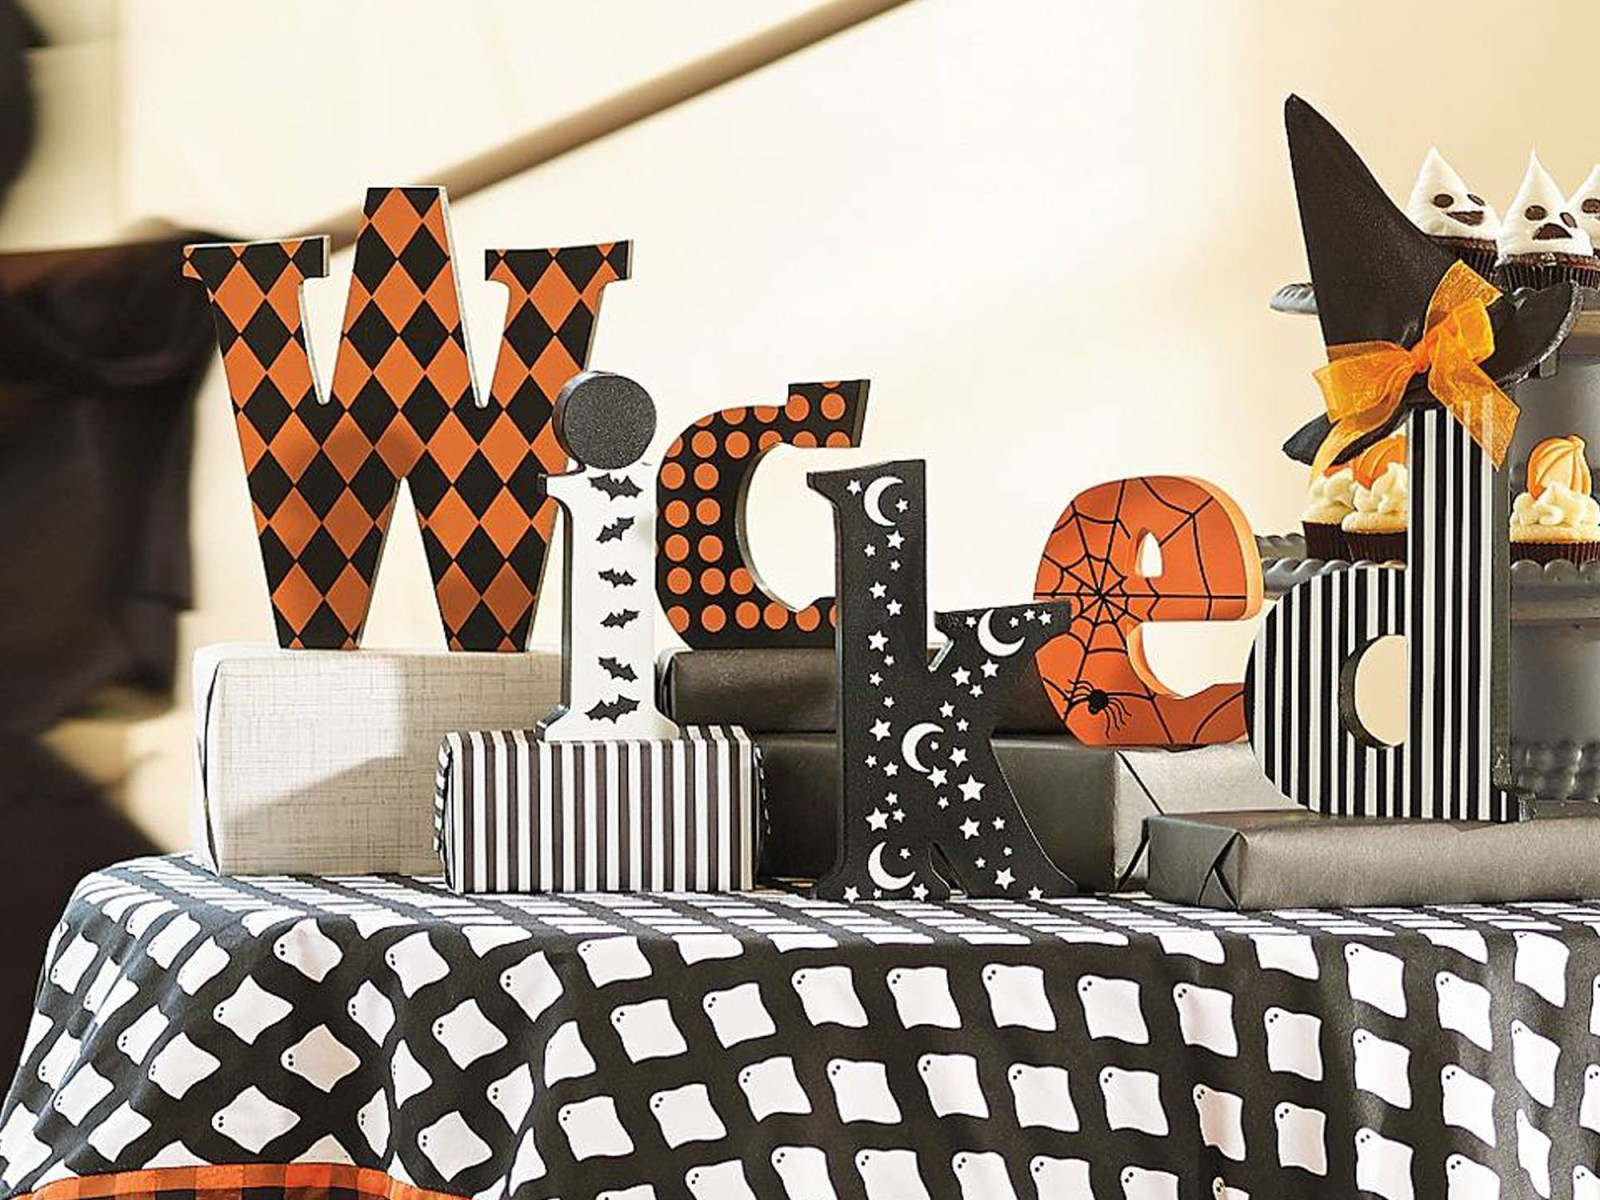 Halloween decorations should have a chic look to them! Here are some of the trendiest spooky pieces of Halloween decor you can get!